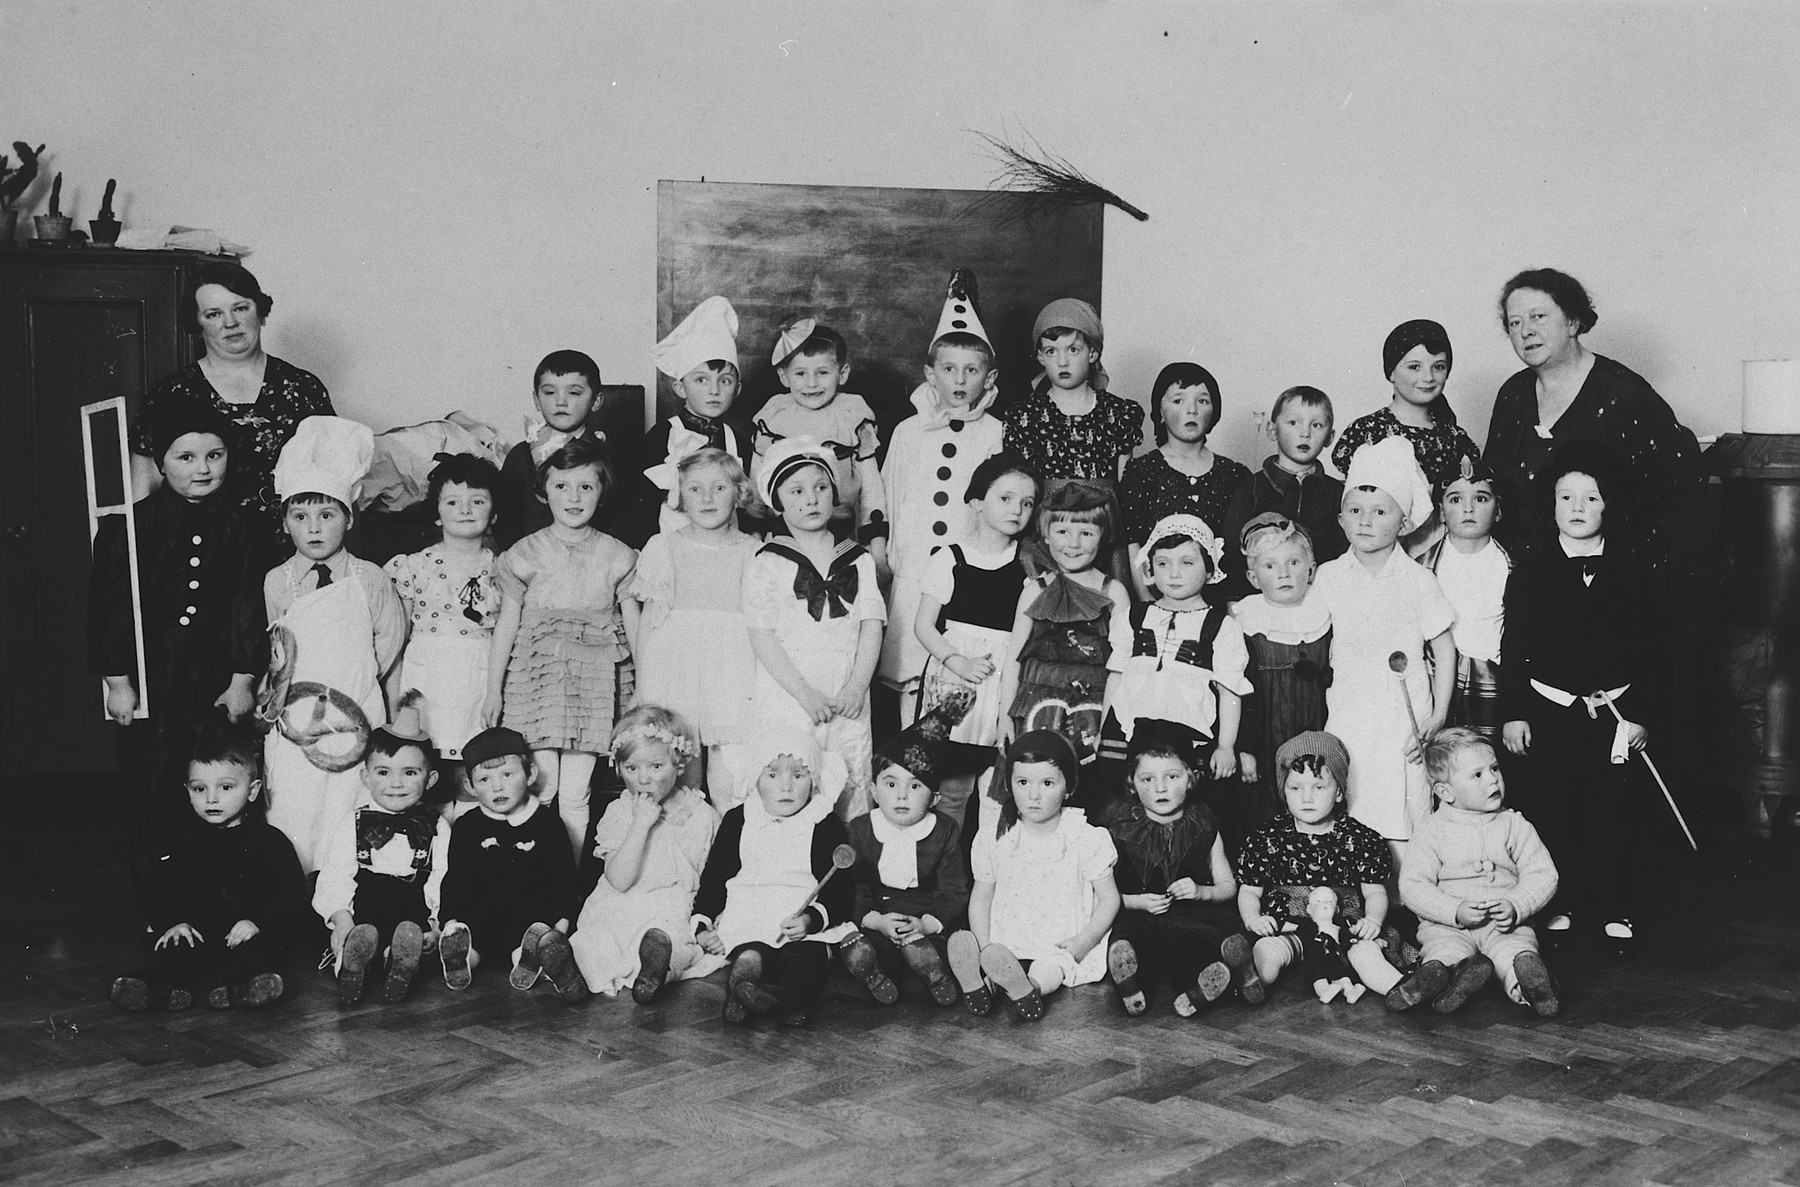 Children in a Czech kindergarten pose for a group portrait in costumes.